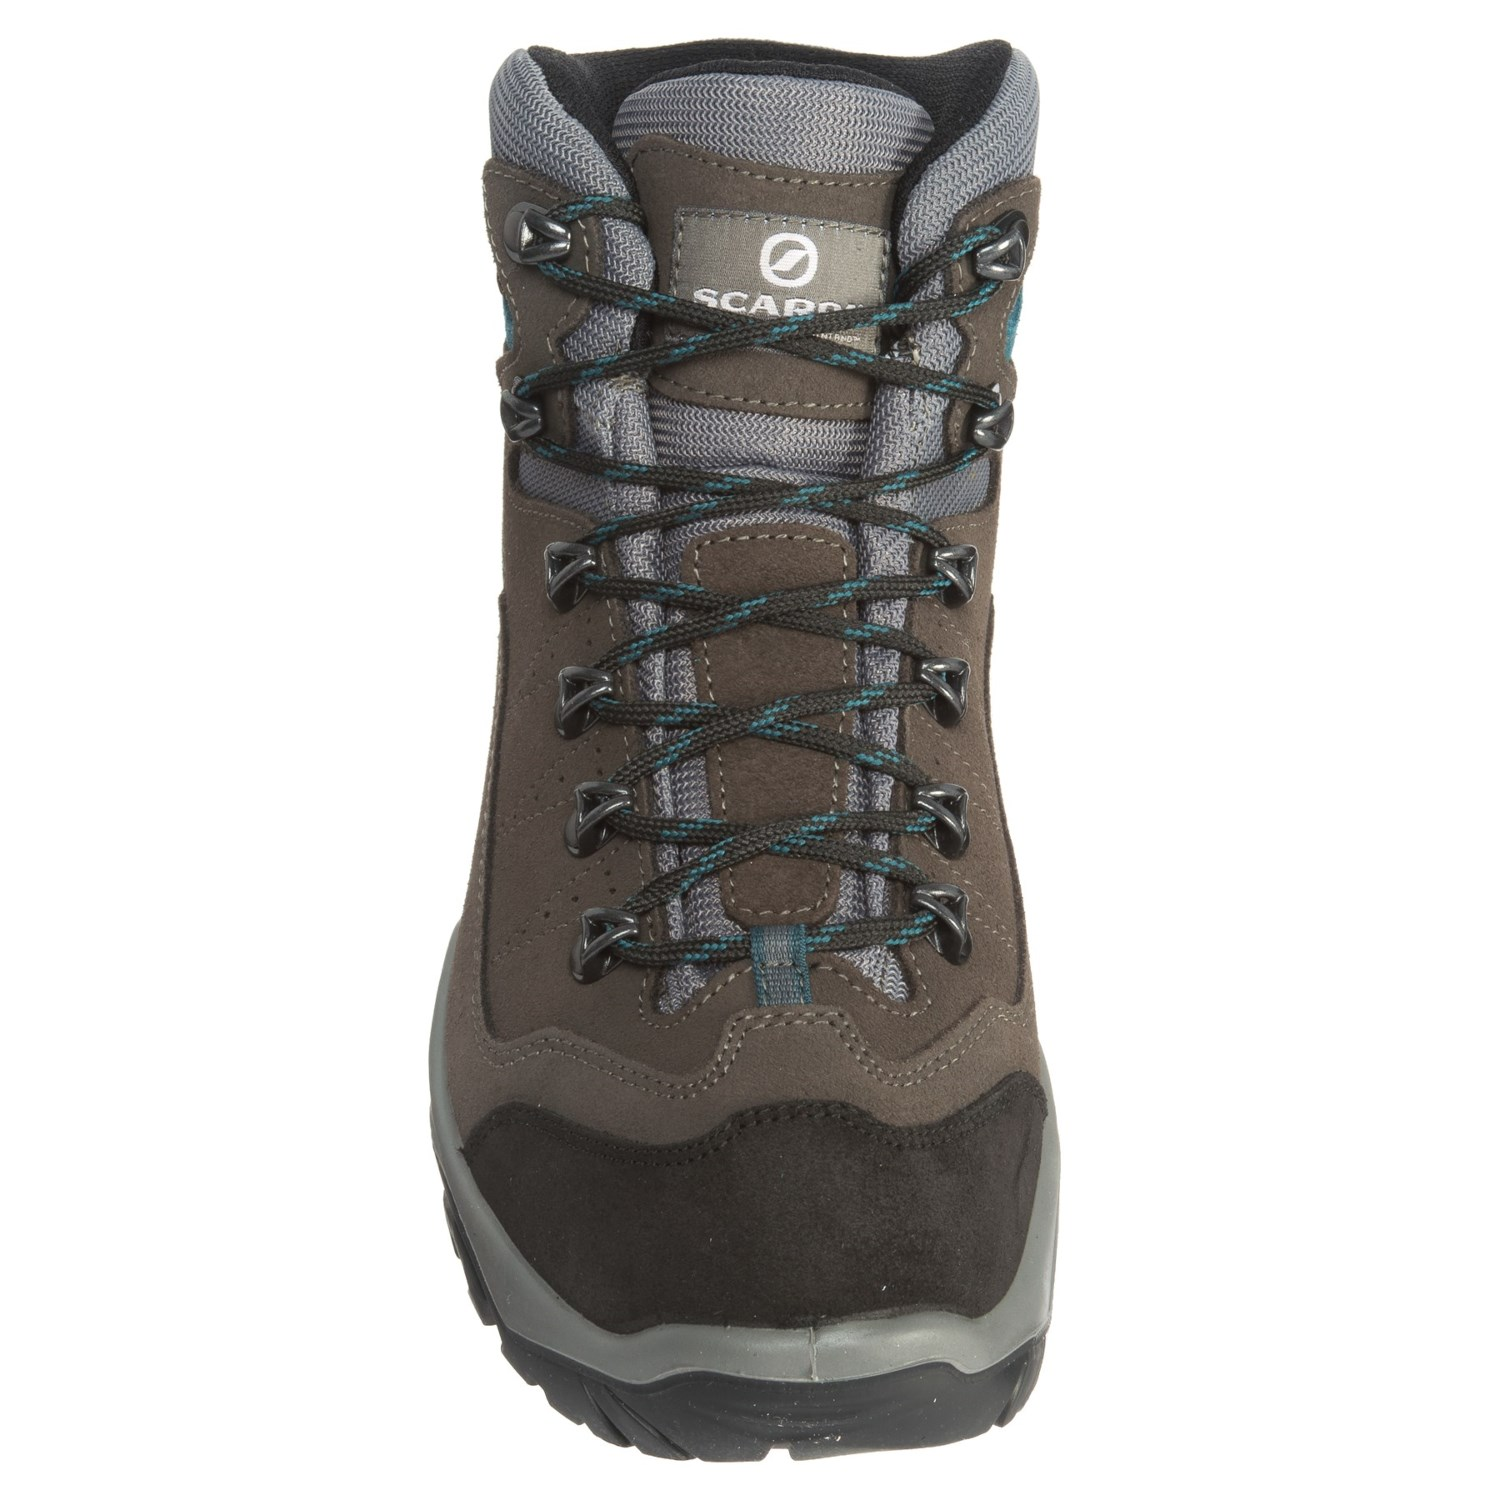 31c1aa126d681 scarpa-made-in-italy-mistral-gore-tex-hiking-boots-waterproof-for-men ~a~4400a_6~1500.1.jpg